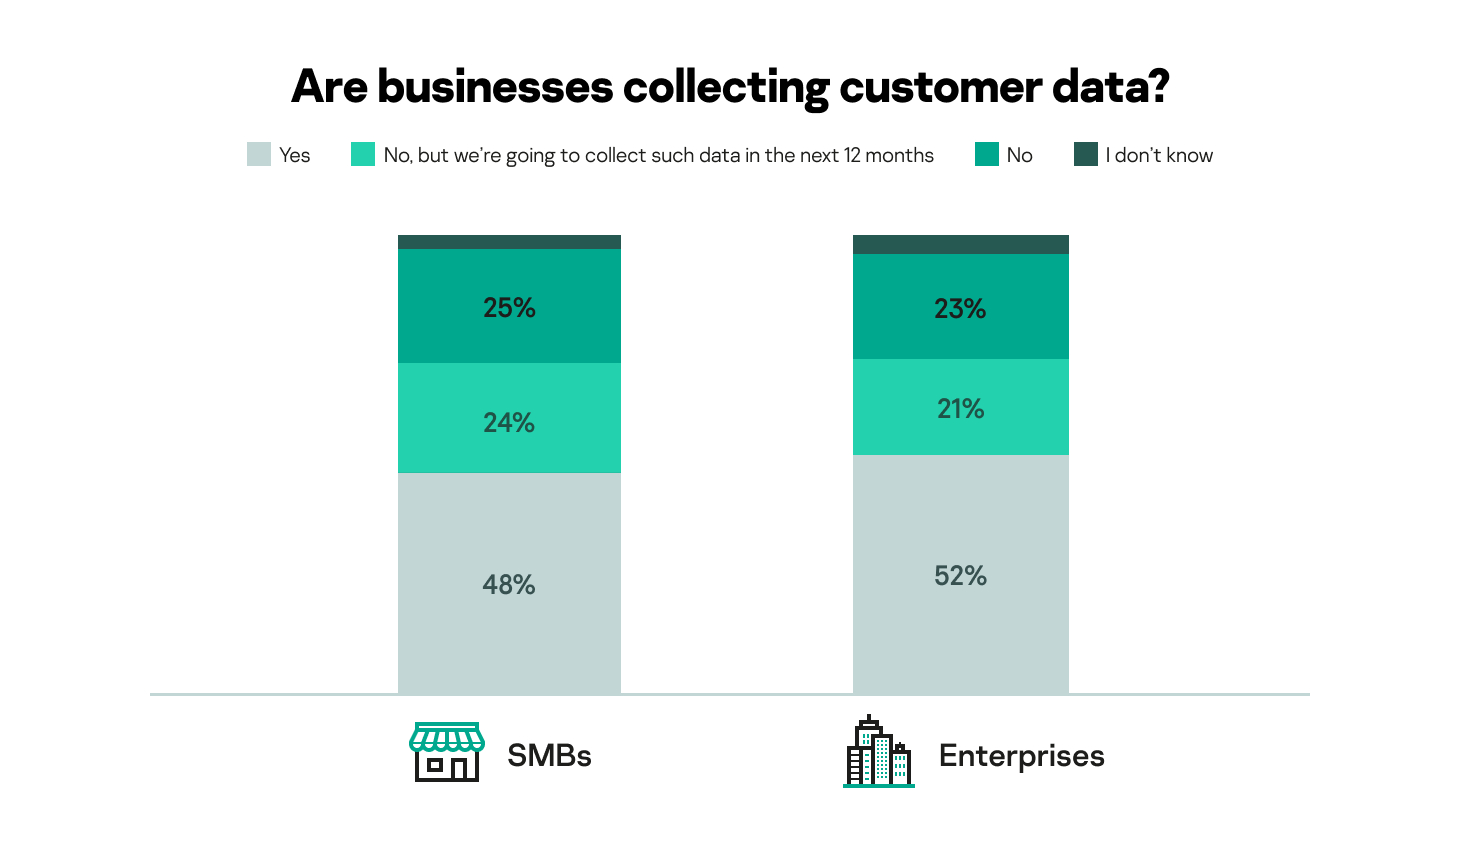 The amount of businesses that collect customer data